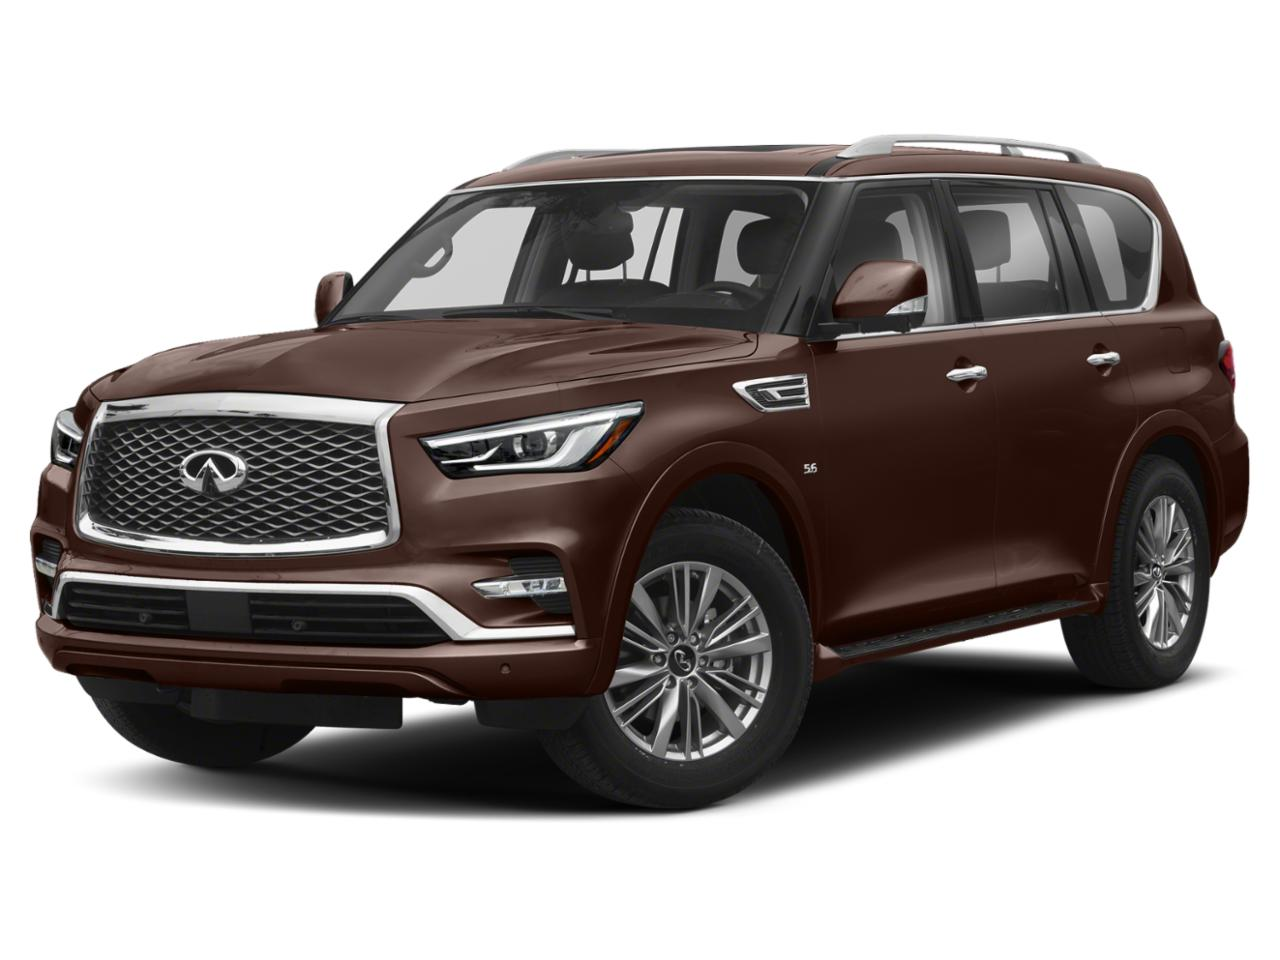 2019 INFINITI QX80 Vehicle Photo in Houston, TX 77054